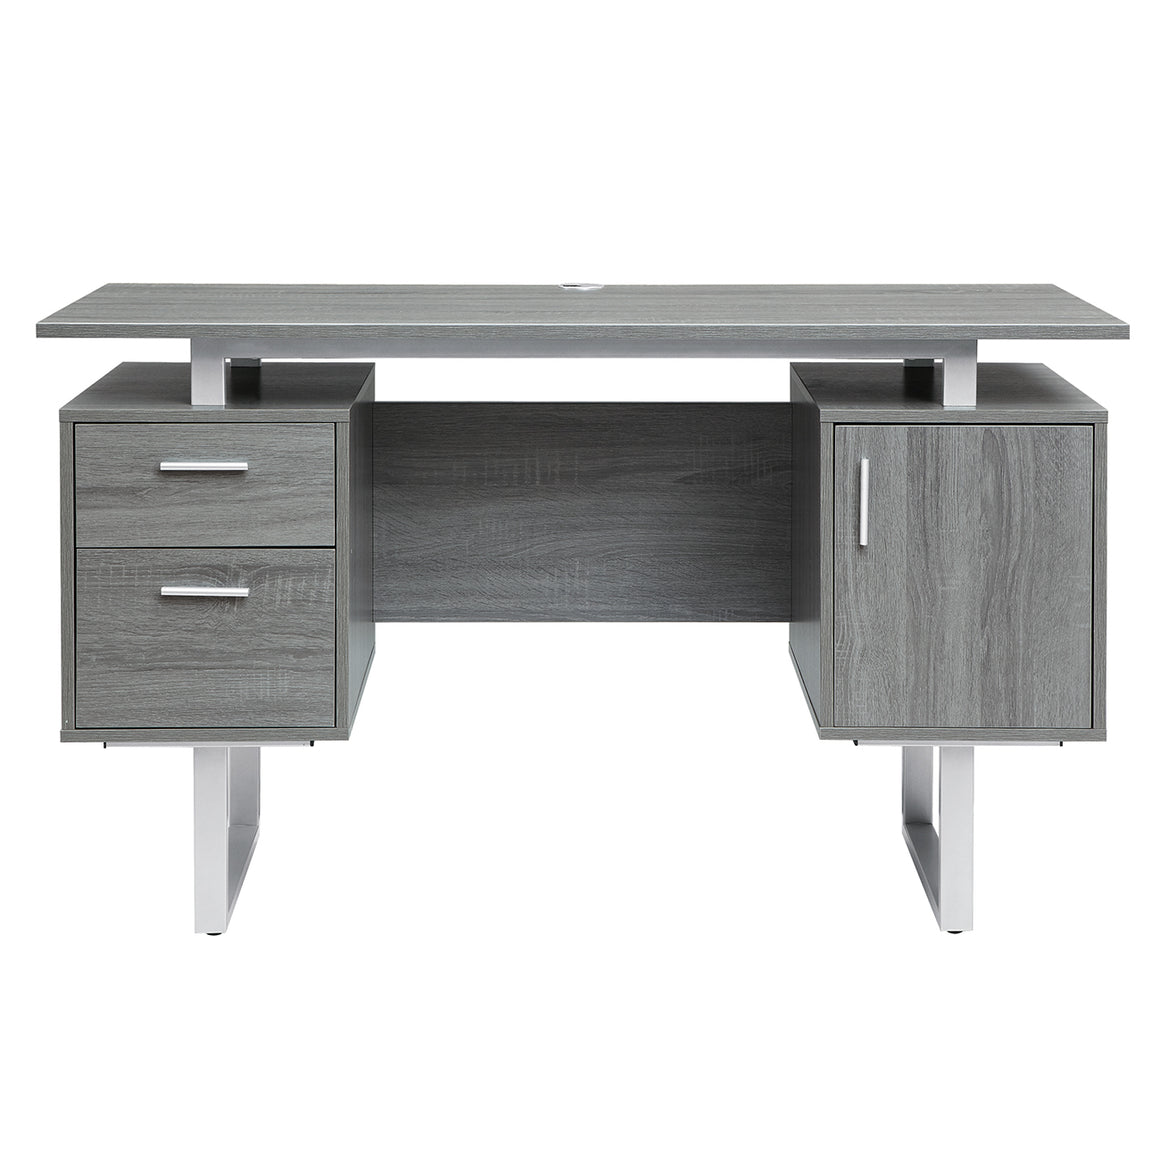 b desk n gray depot home hamilton grey desks collection the office furniture decorators